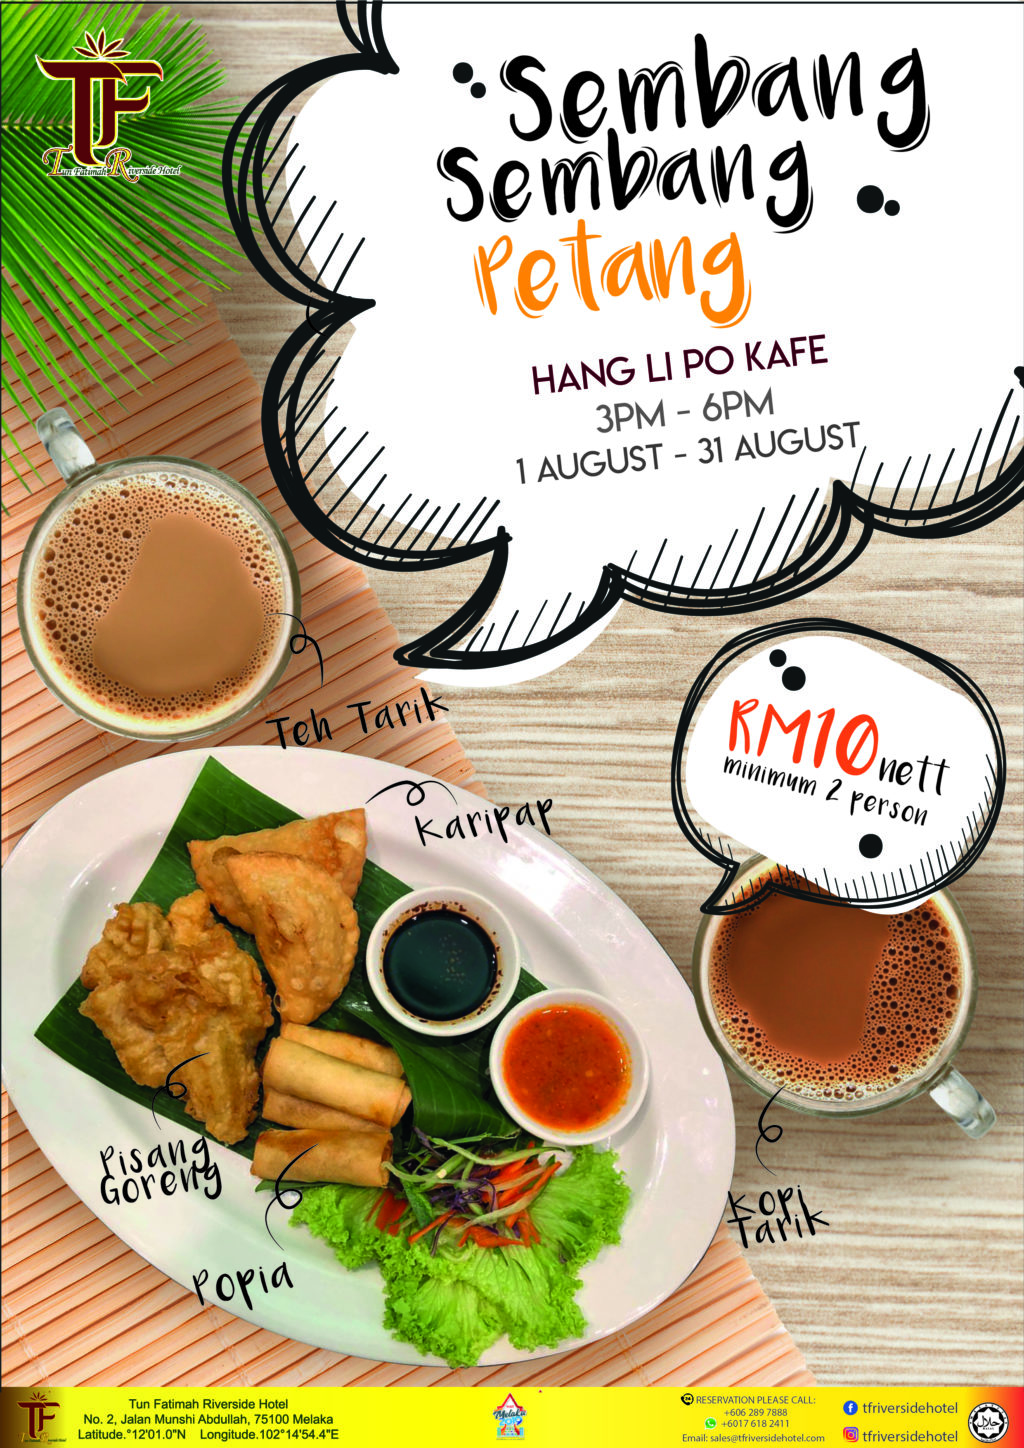 Poster on Sembang-sembang petang eith tea time snacks and 2 cups of drinks